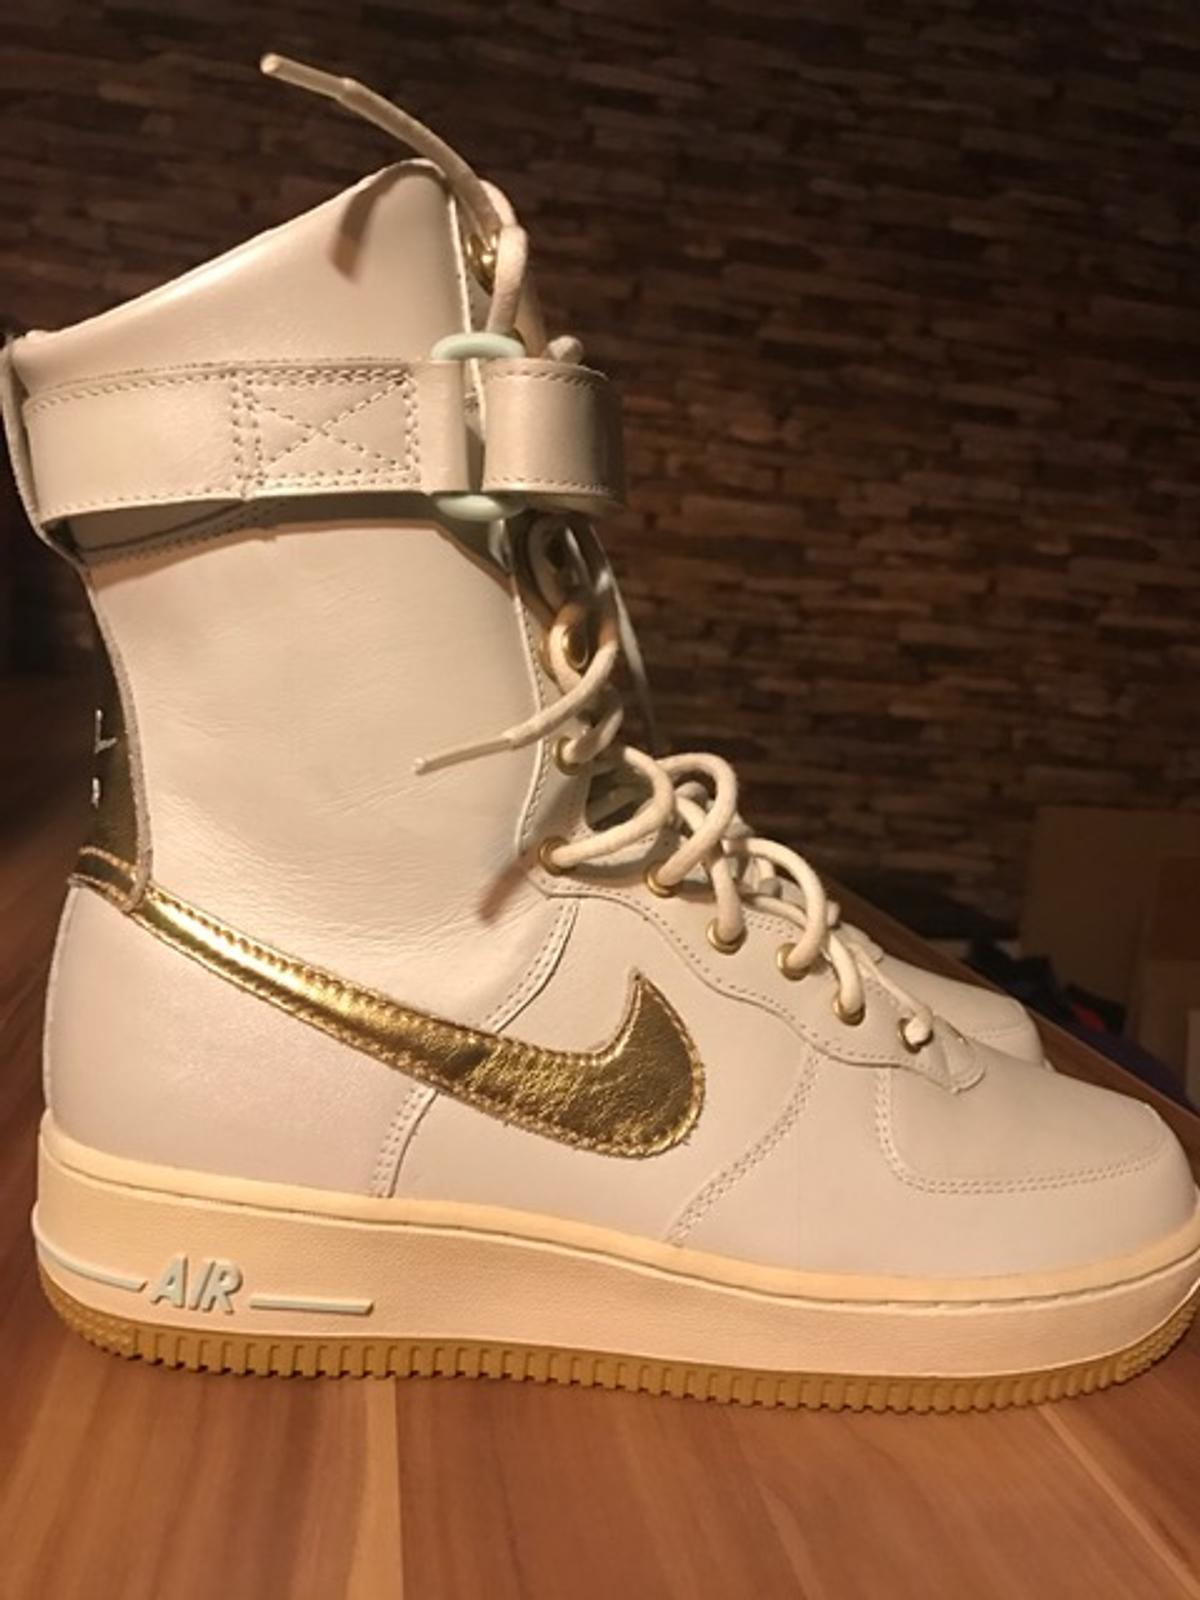 NIKE STIEFEL Whiete Gold Perlmutt in Berlin for €80.00 for